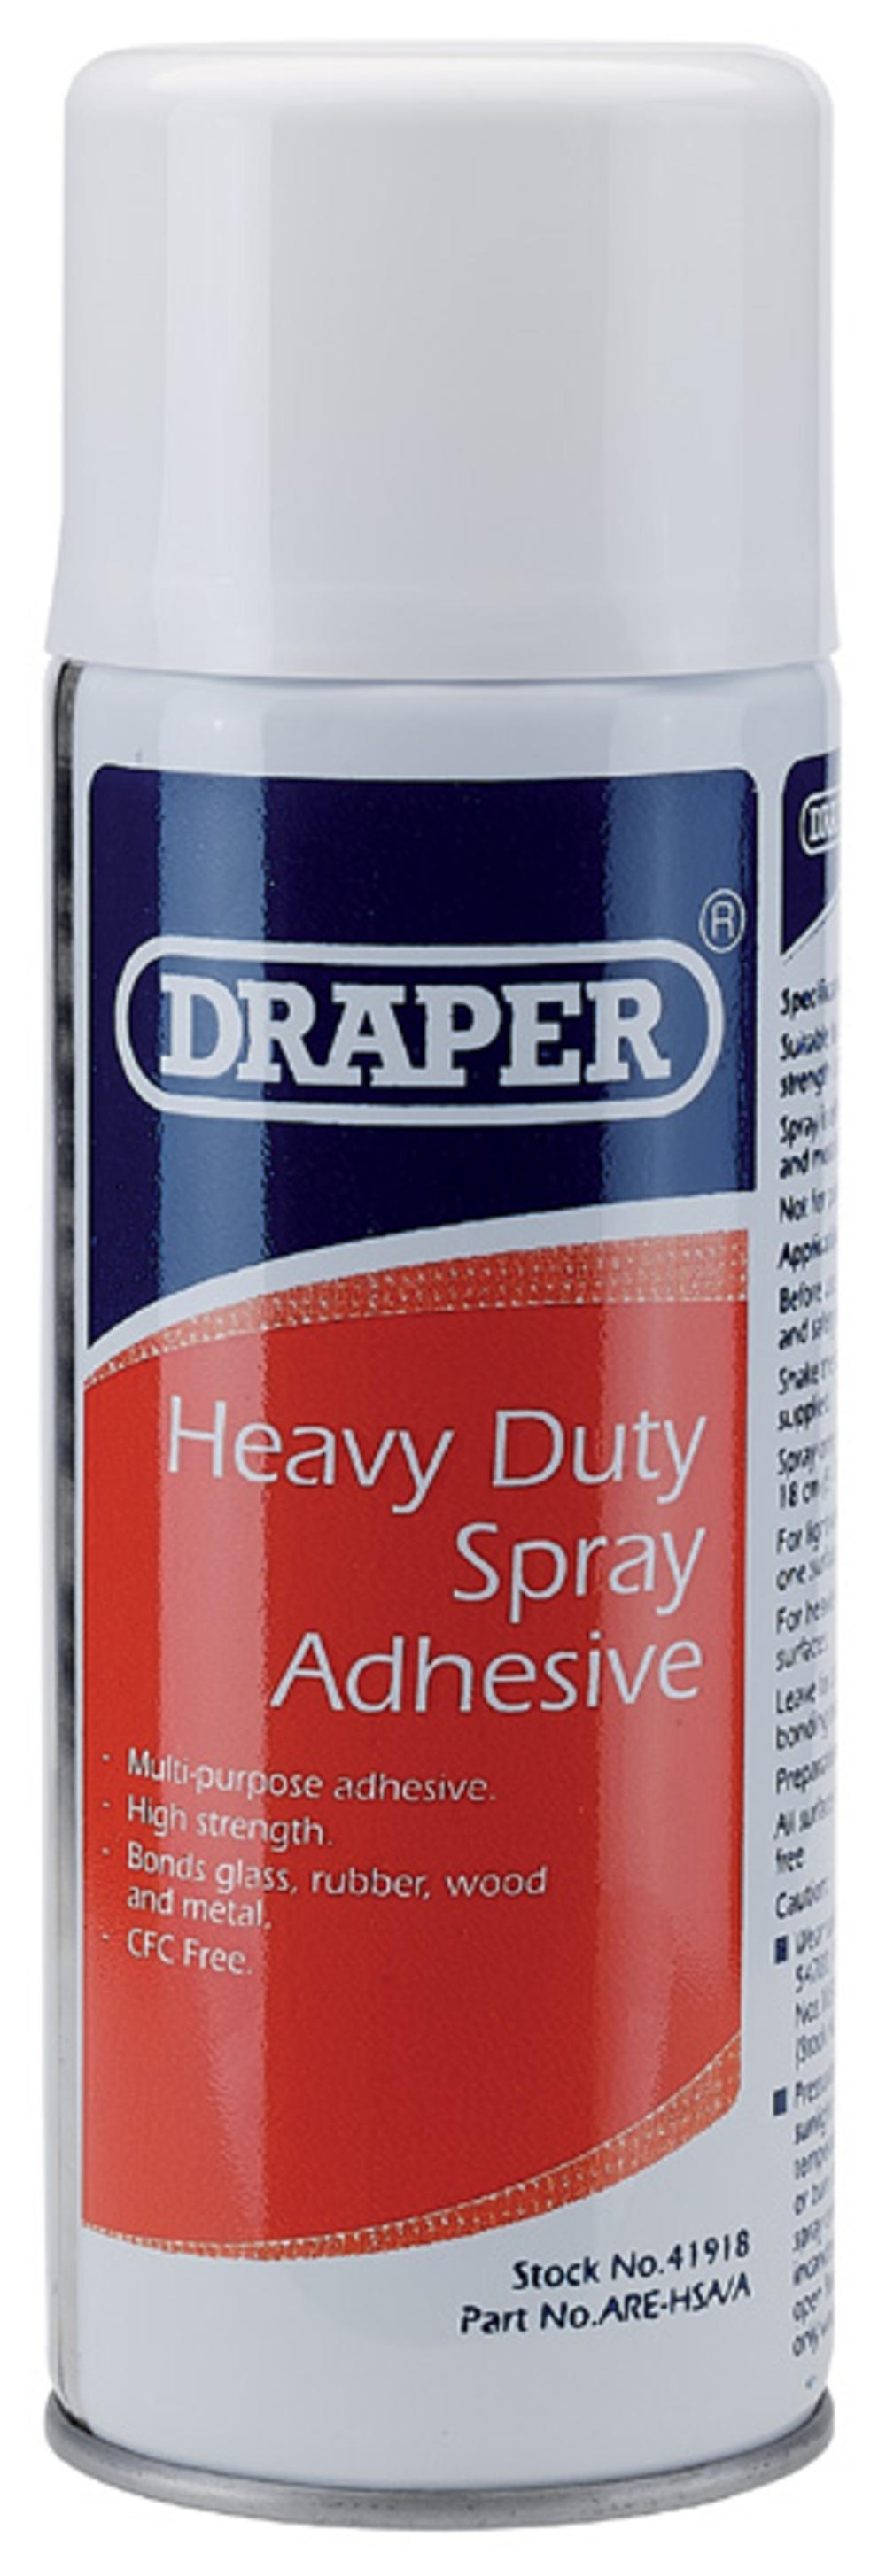 Draper 41918 ARE-HSA/A 400ml Heavy Duty Spray Adhesive